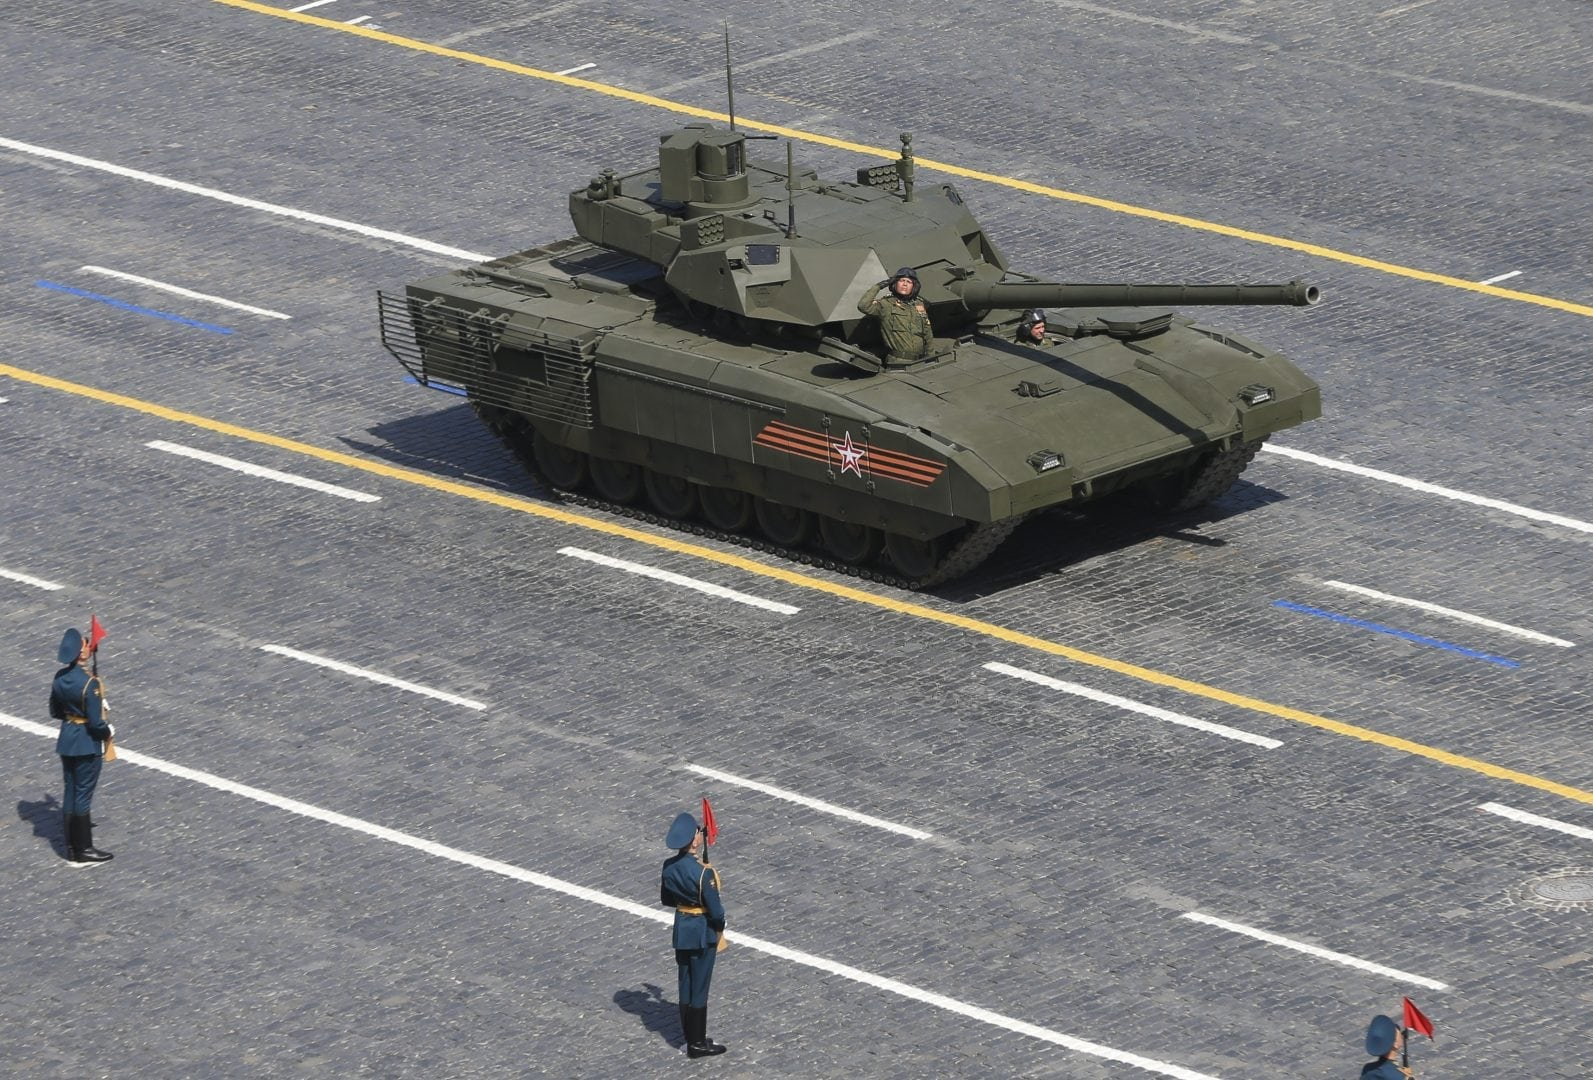 Image for Russia's military modernization versus peace and stability in Europe